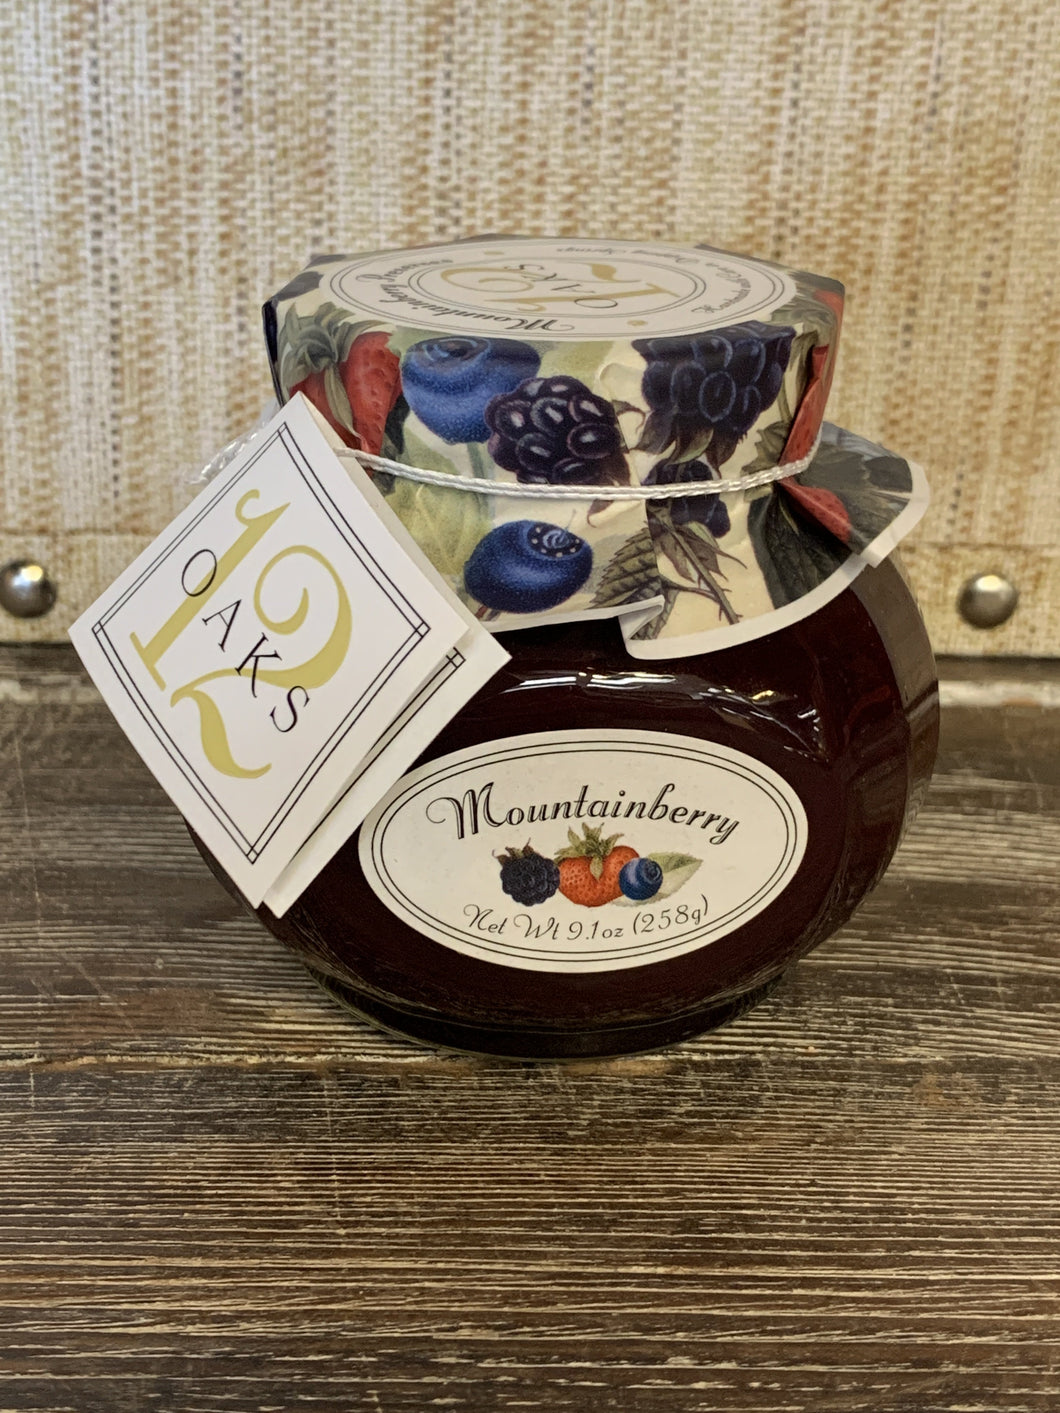 12 Oaks Mountainberry Preserves